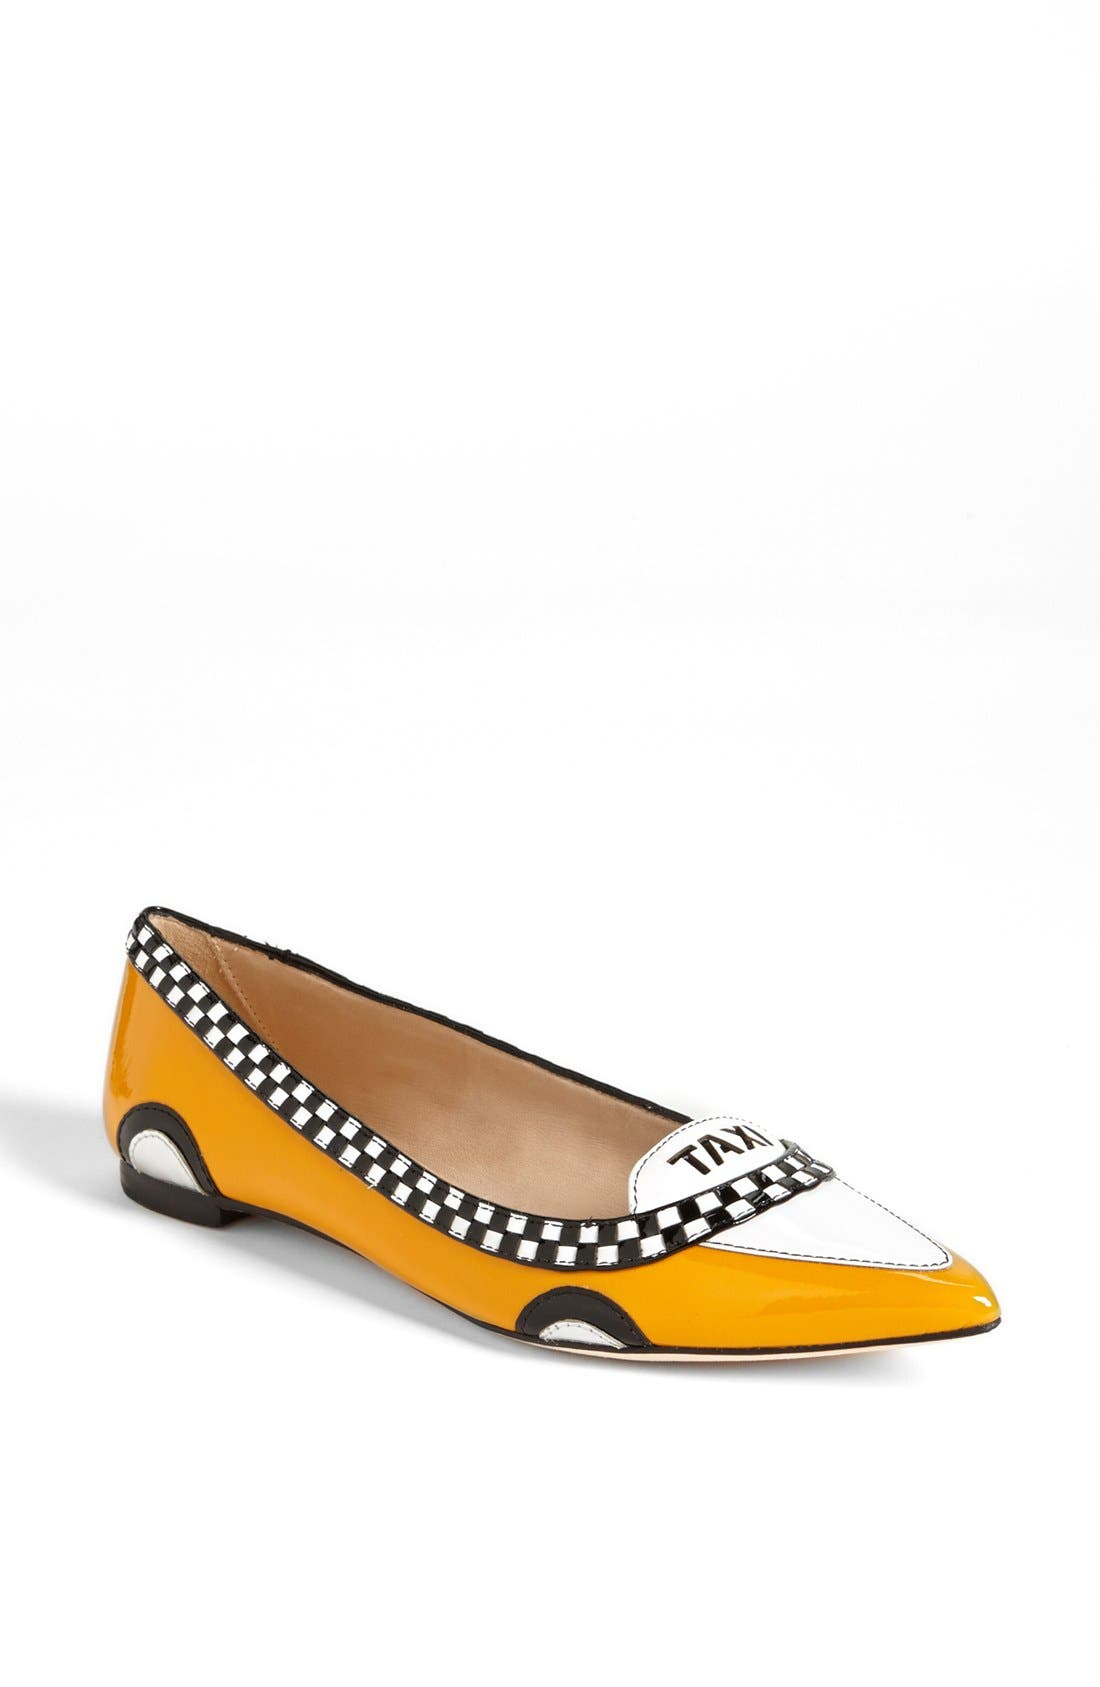 Alternate Image 1 Selected - kate spade new york 'go' flat